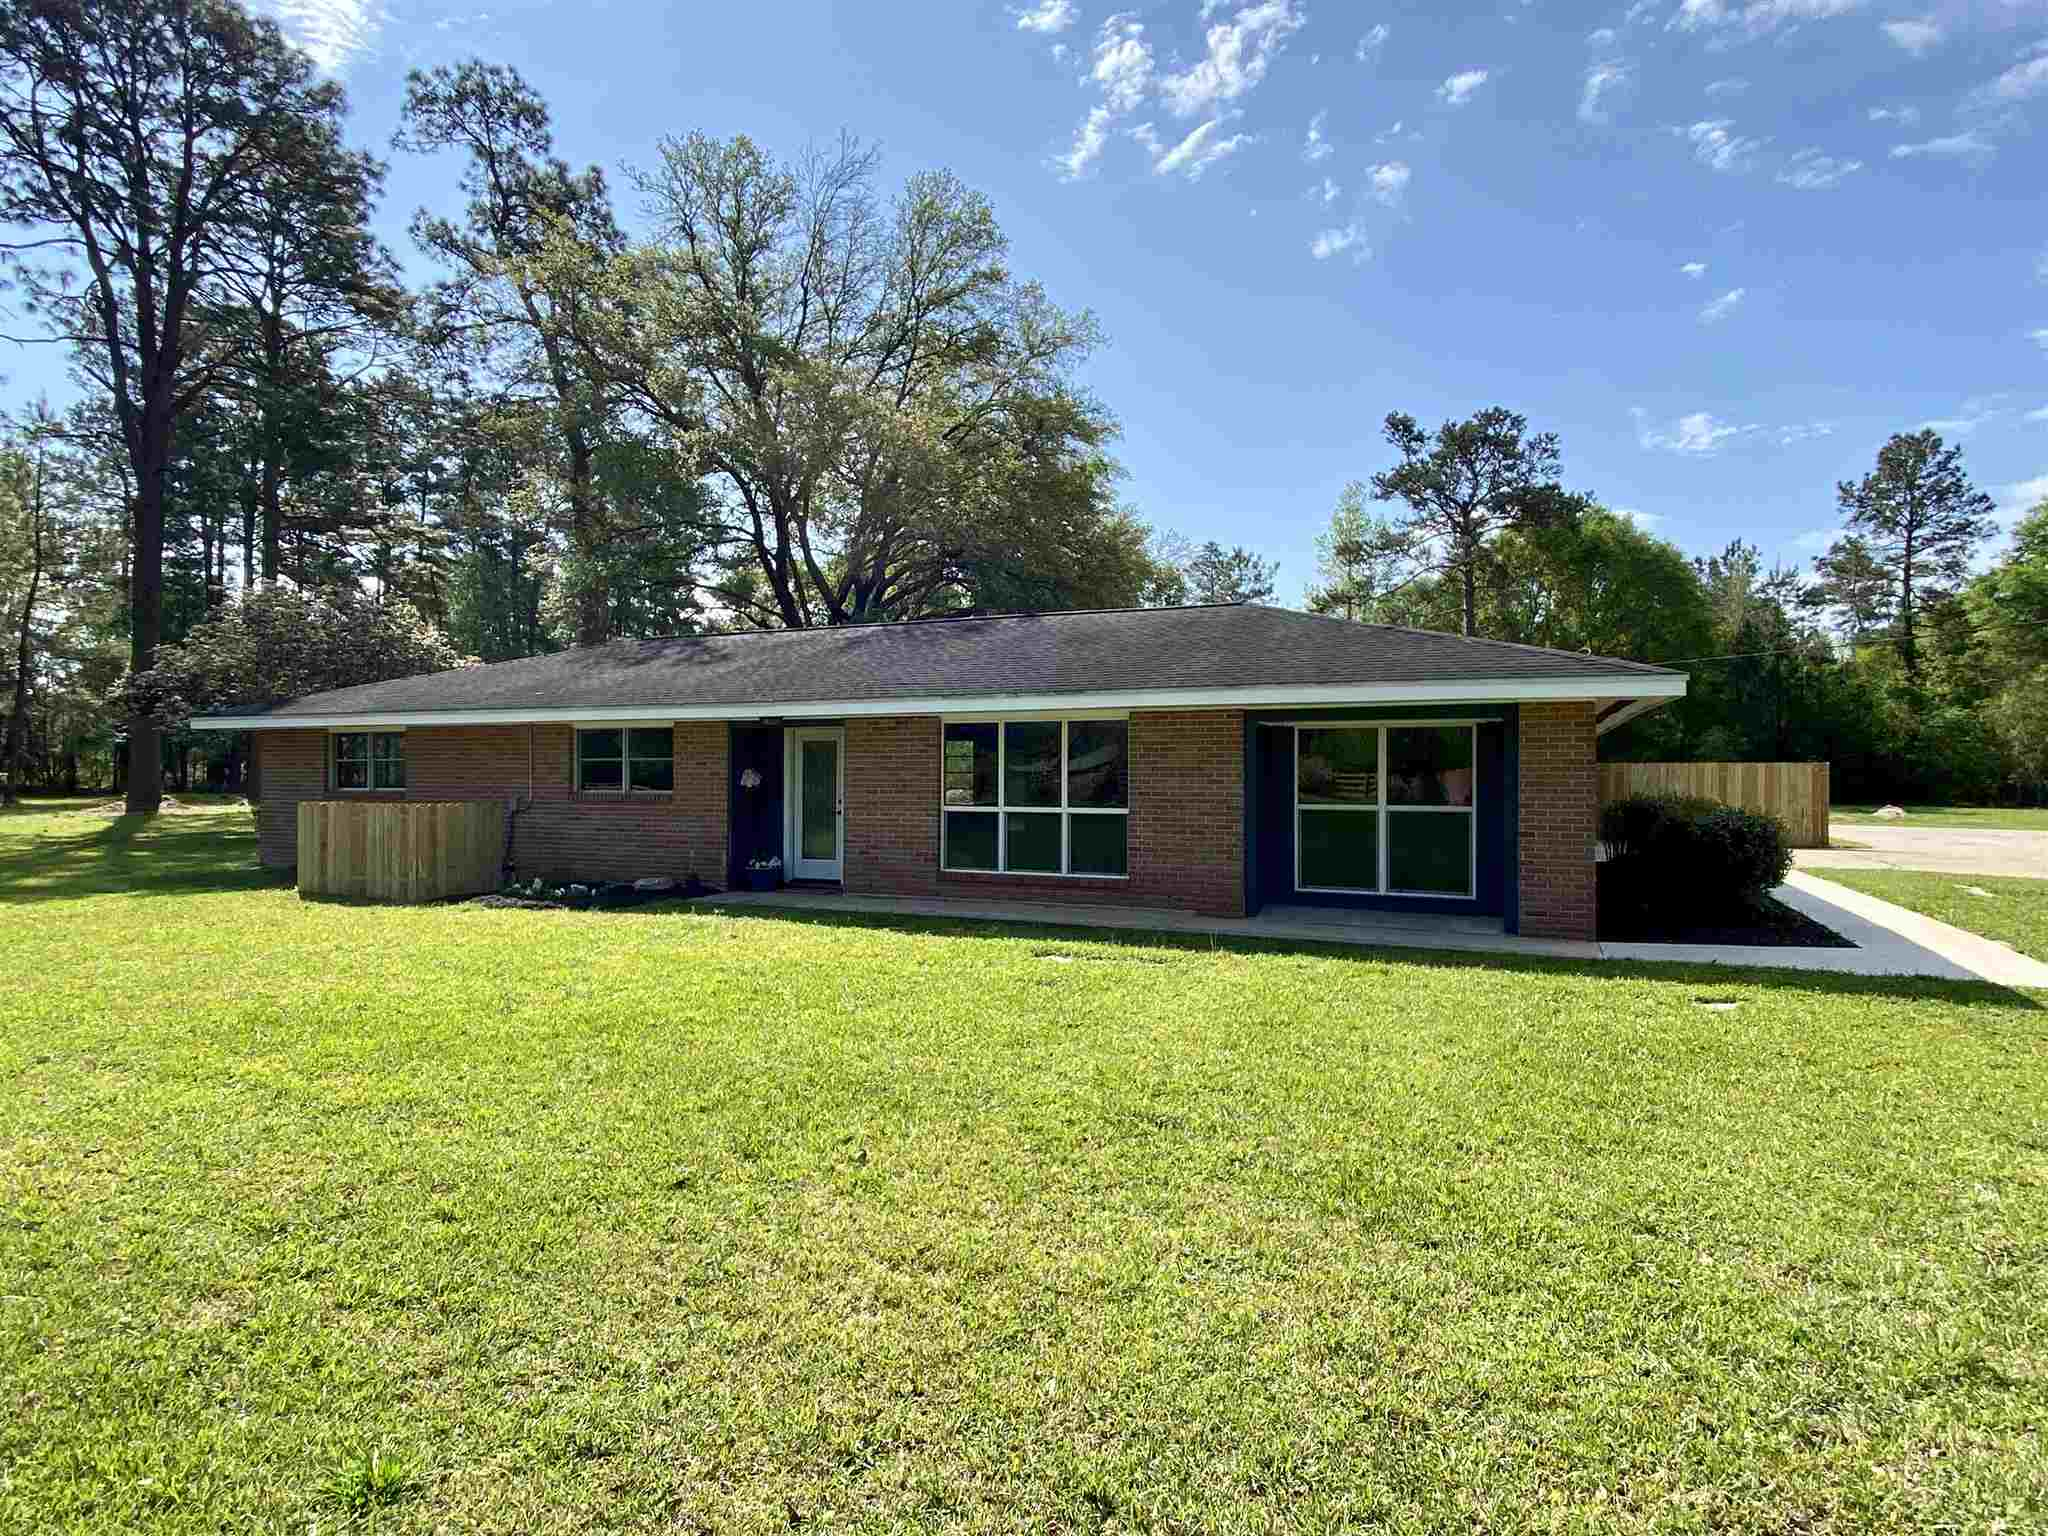 279 County Road 400, Kirbyville, Texas 75956, 4 Bedrooms Bedrooms, ,2 BathroomsBathrooms,Single Family,For Sale,279 County Road 400,1,202553